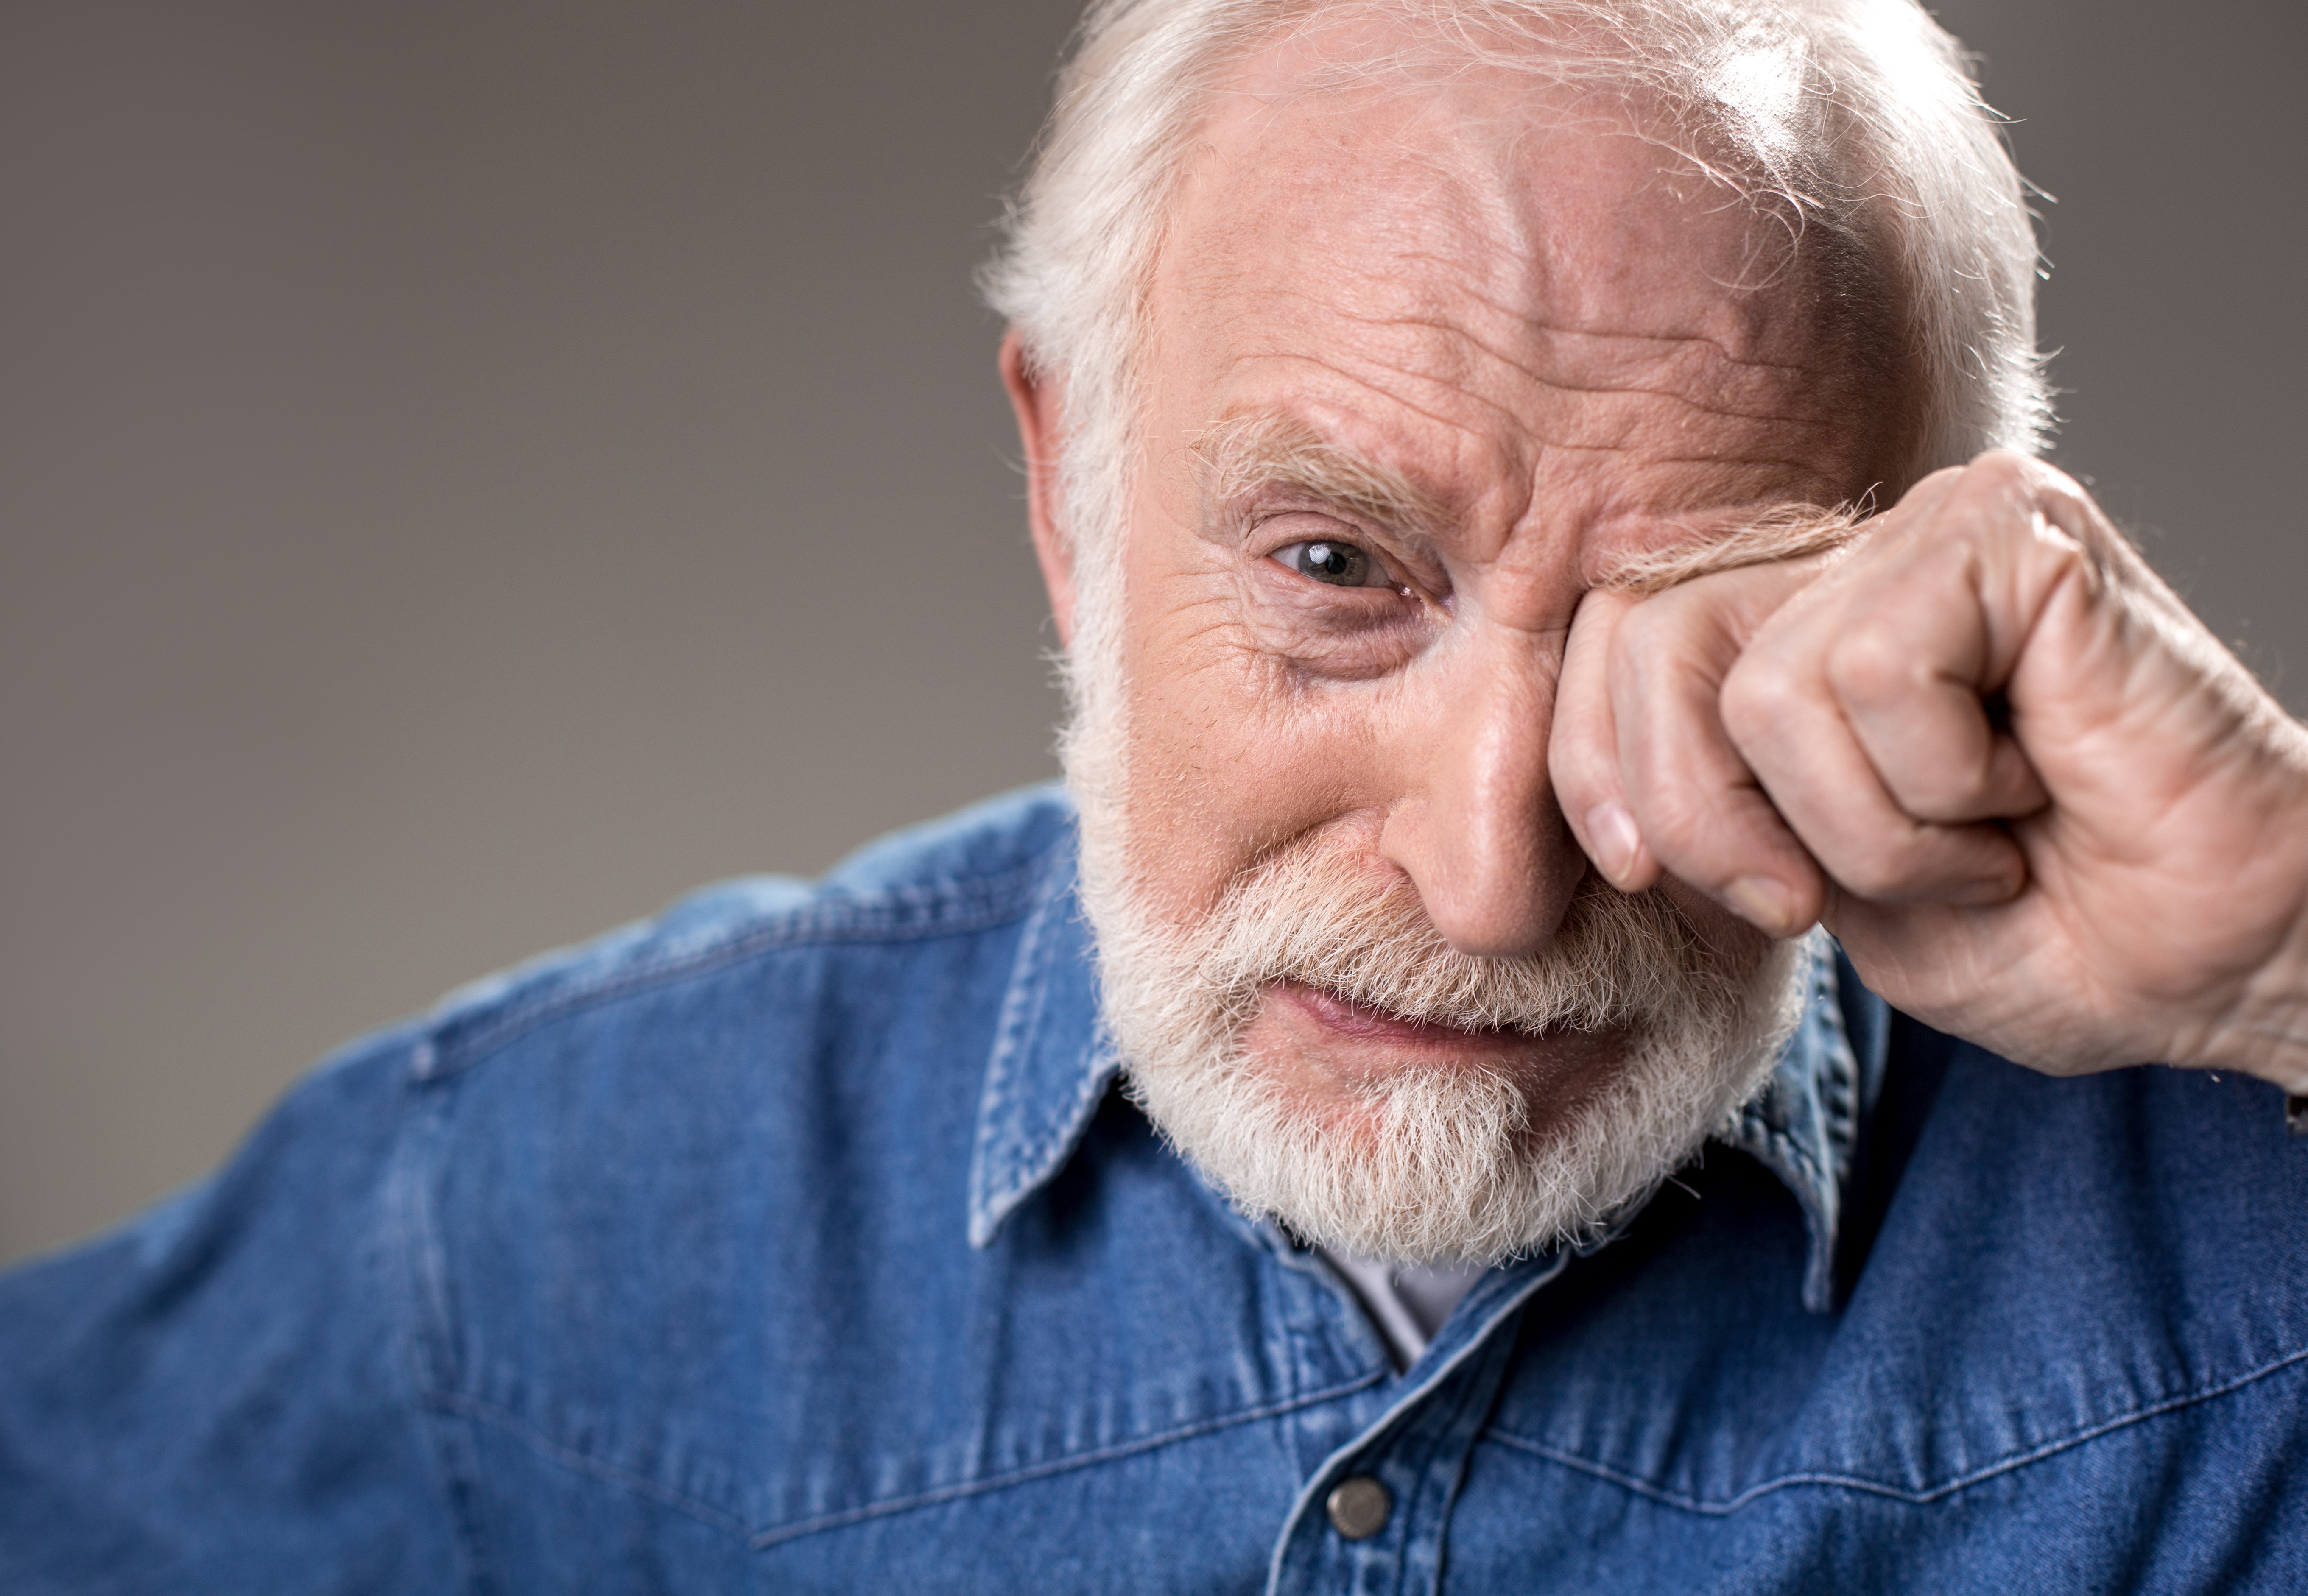 Older man in blue shirt covering one eye as he cries.|Source: Shutterstock